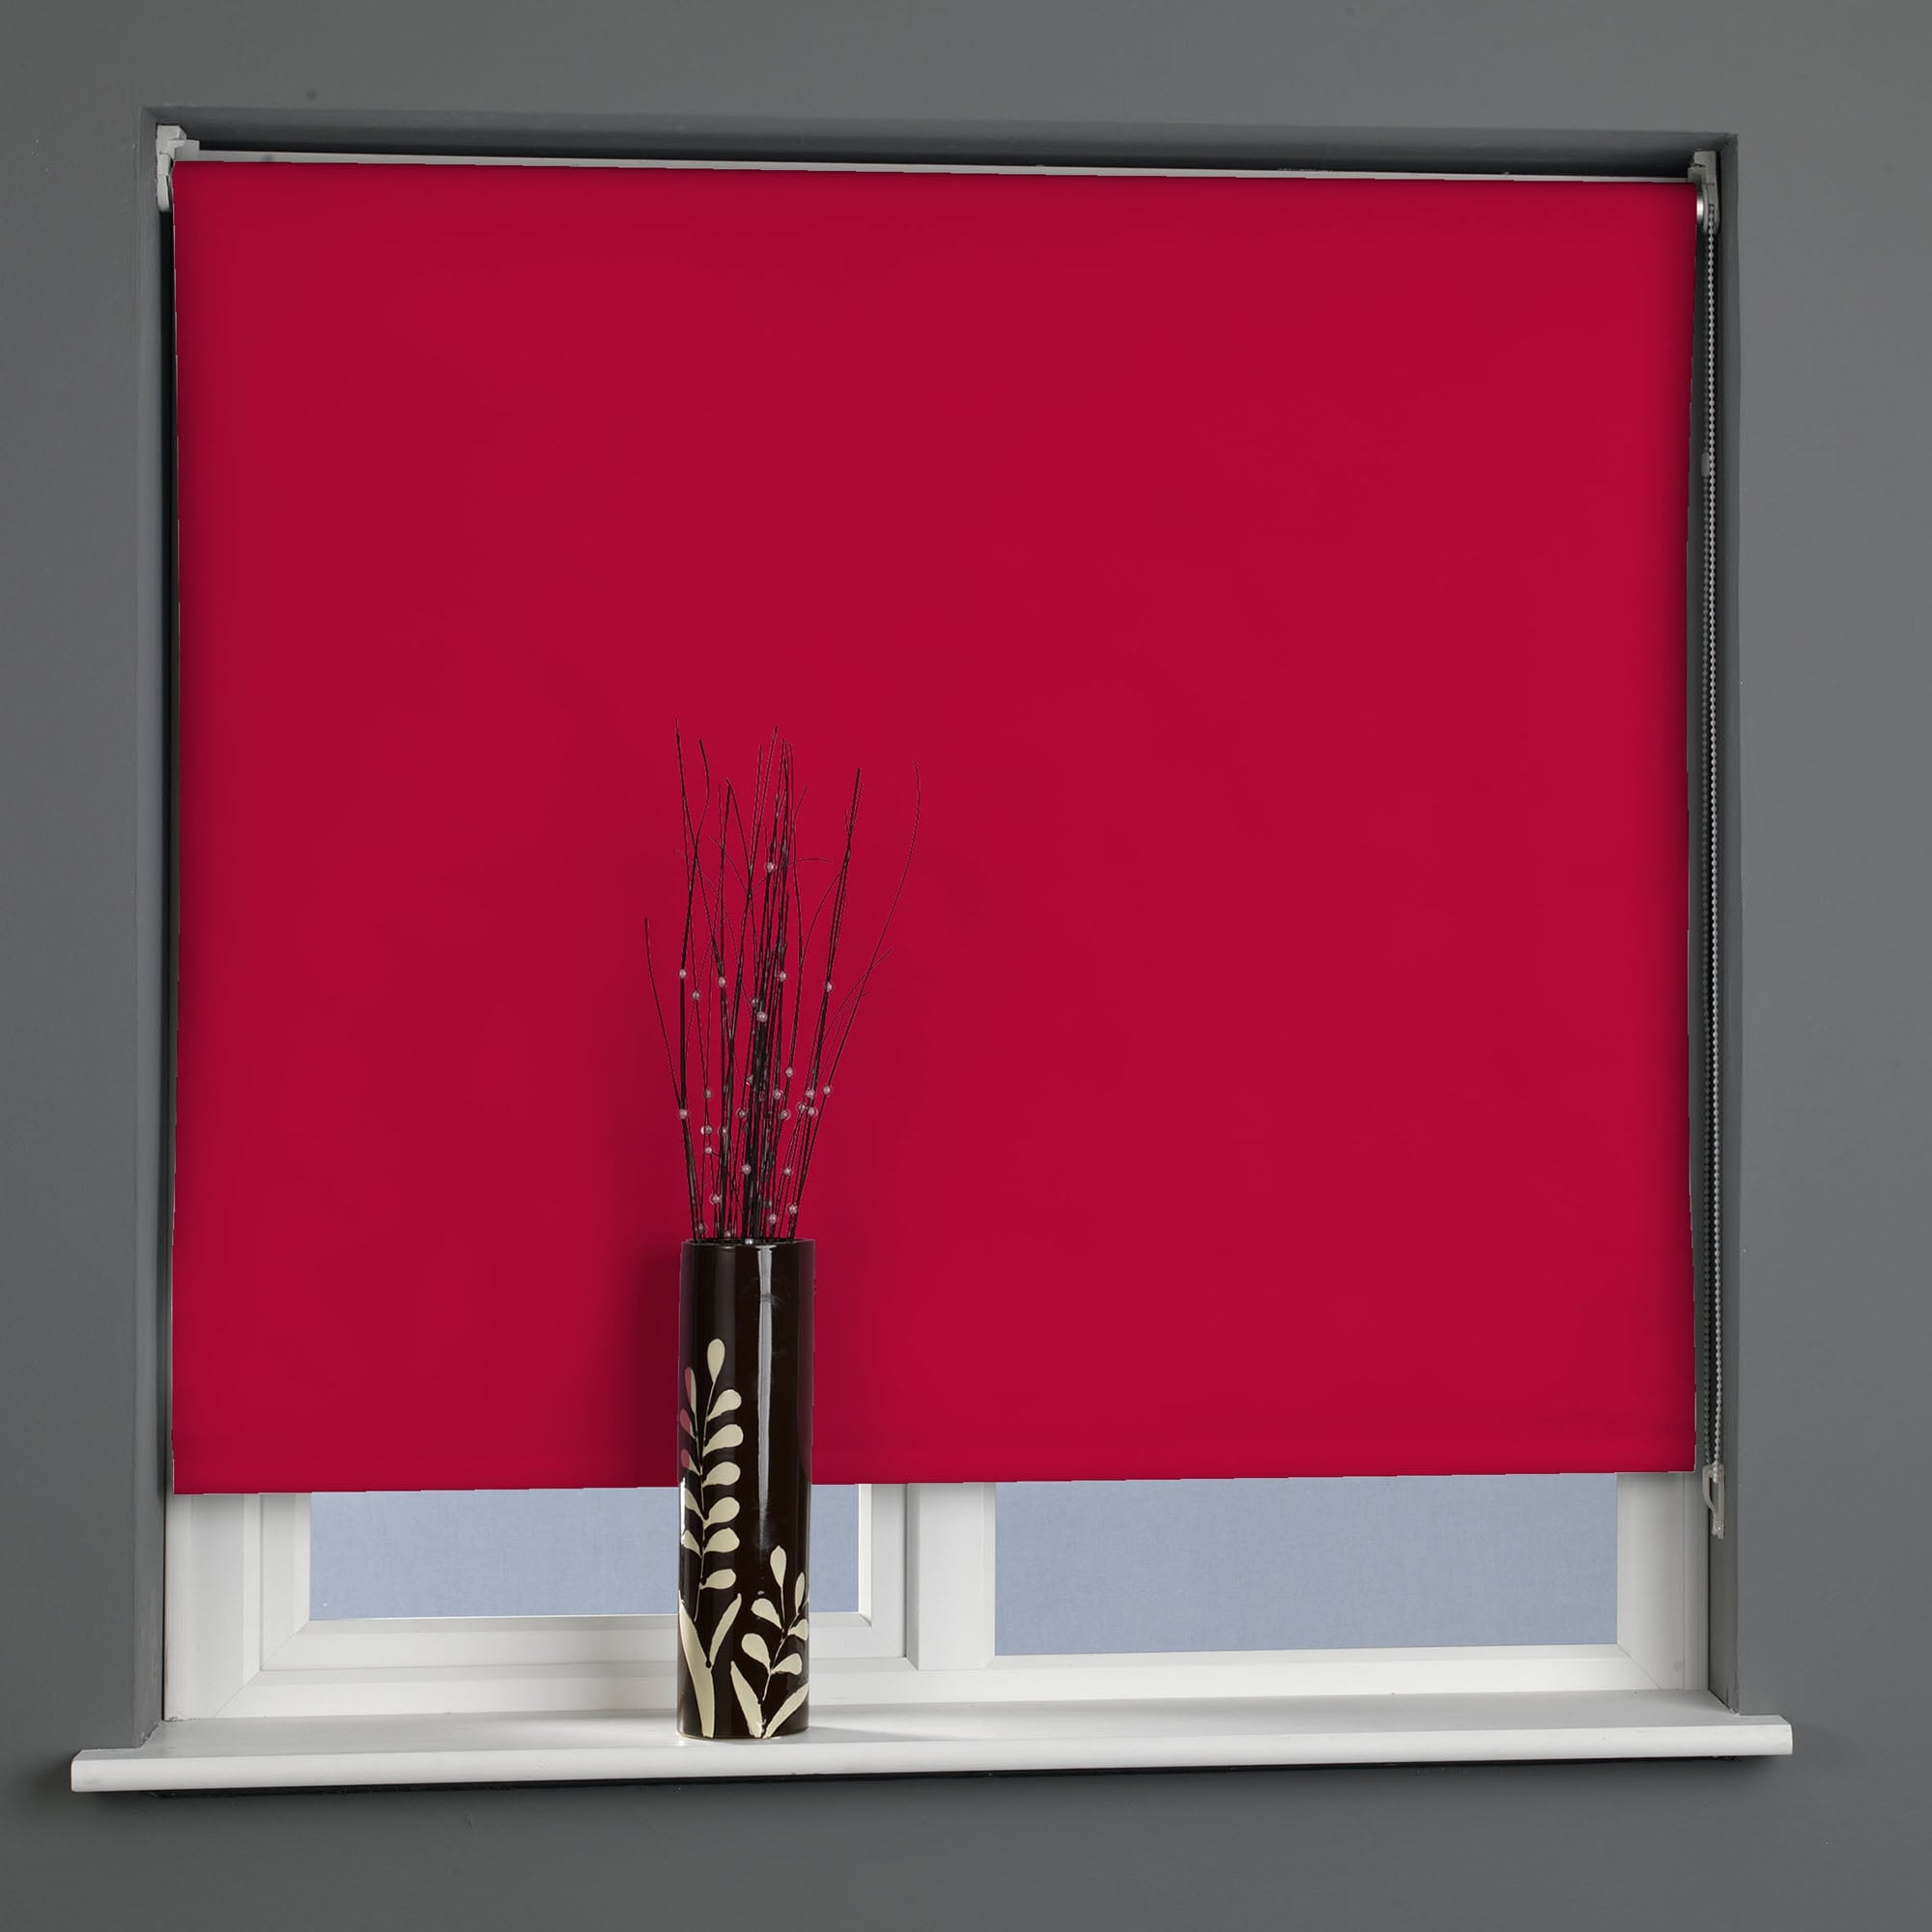 C H Postbox Red Blackout Roller Blinds 60cm To 180cm Closs Hamblin